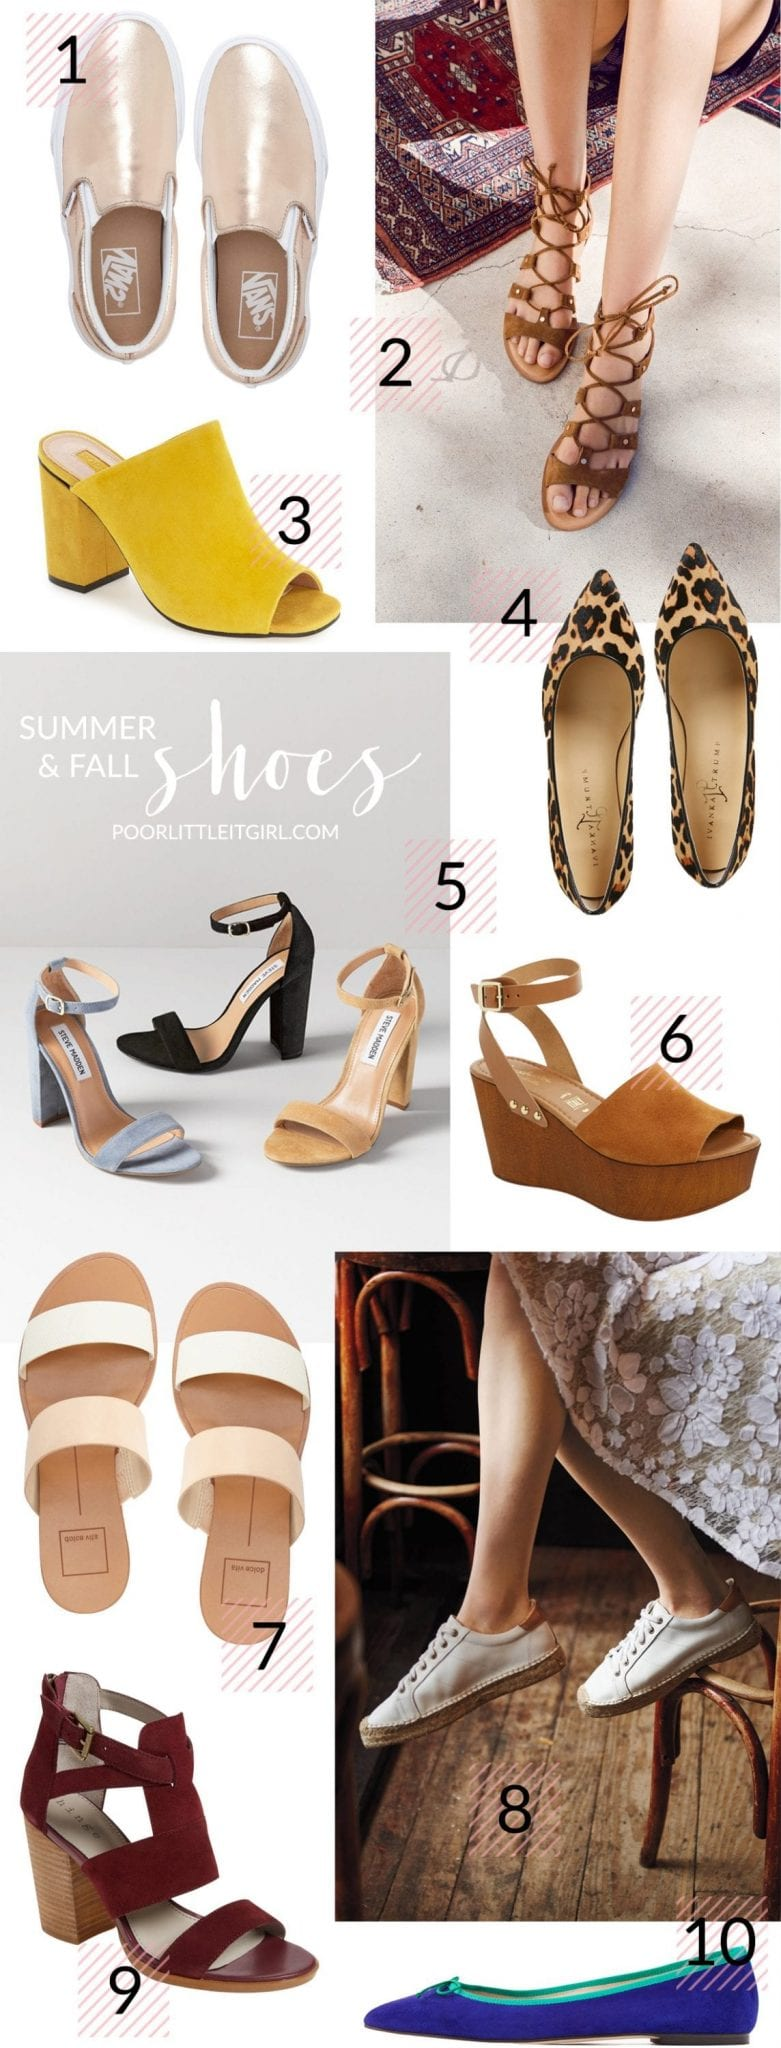 Poor Little It Girl - Summer and Fall Shoes - @poorlilitgirl